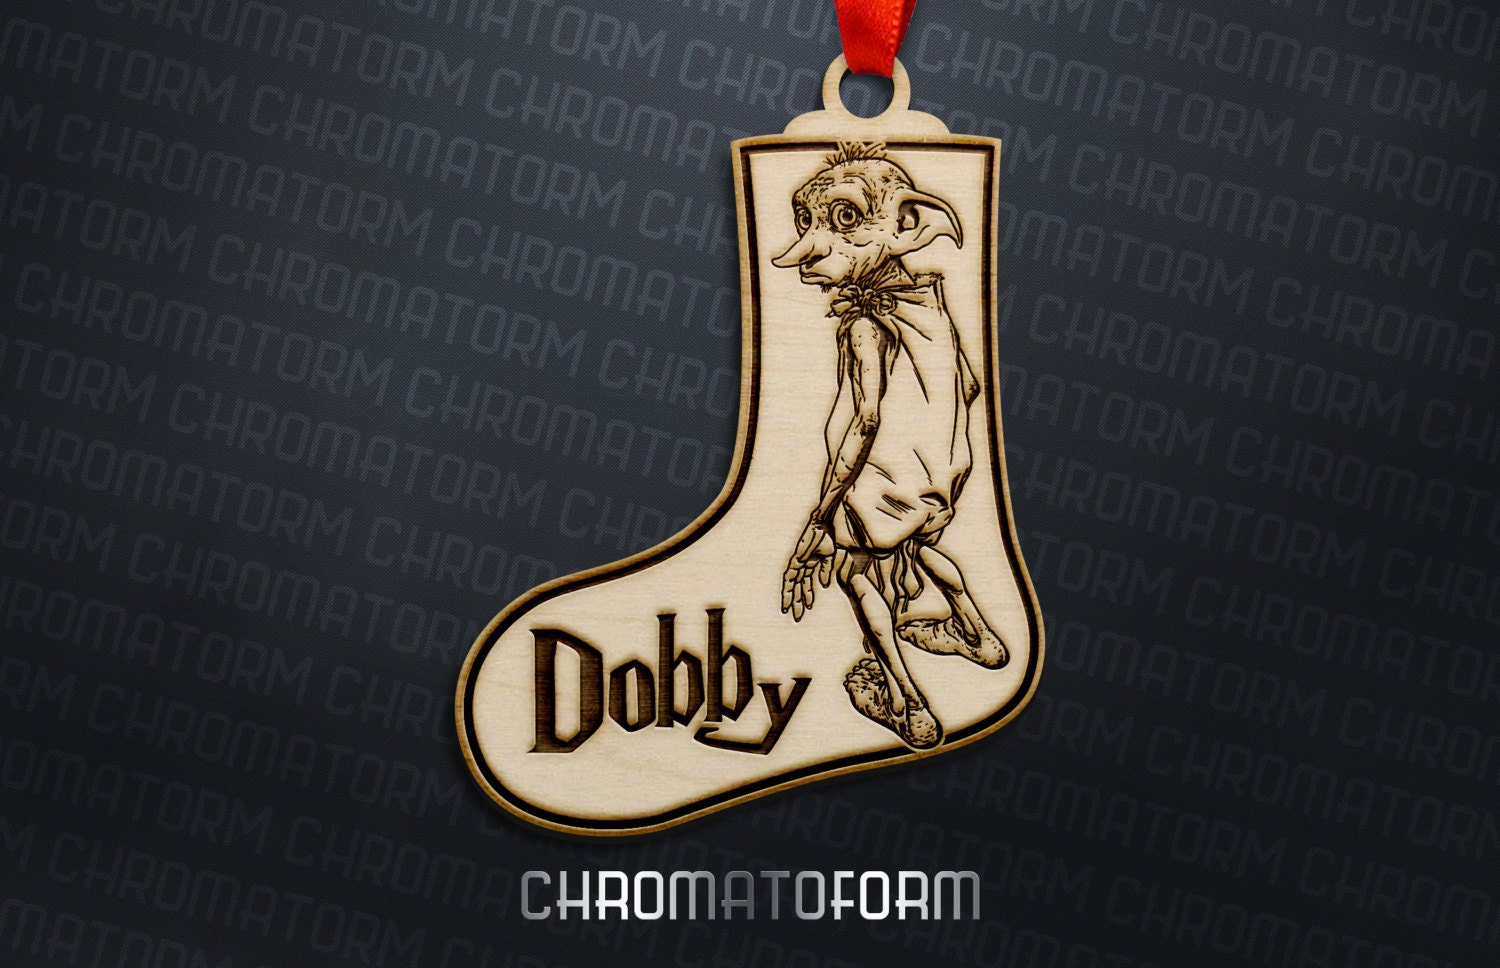 Harry Potter Dobby the House Elf Ornament/Stocking Tag